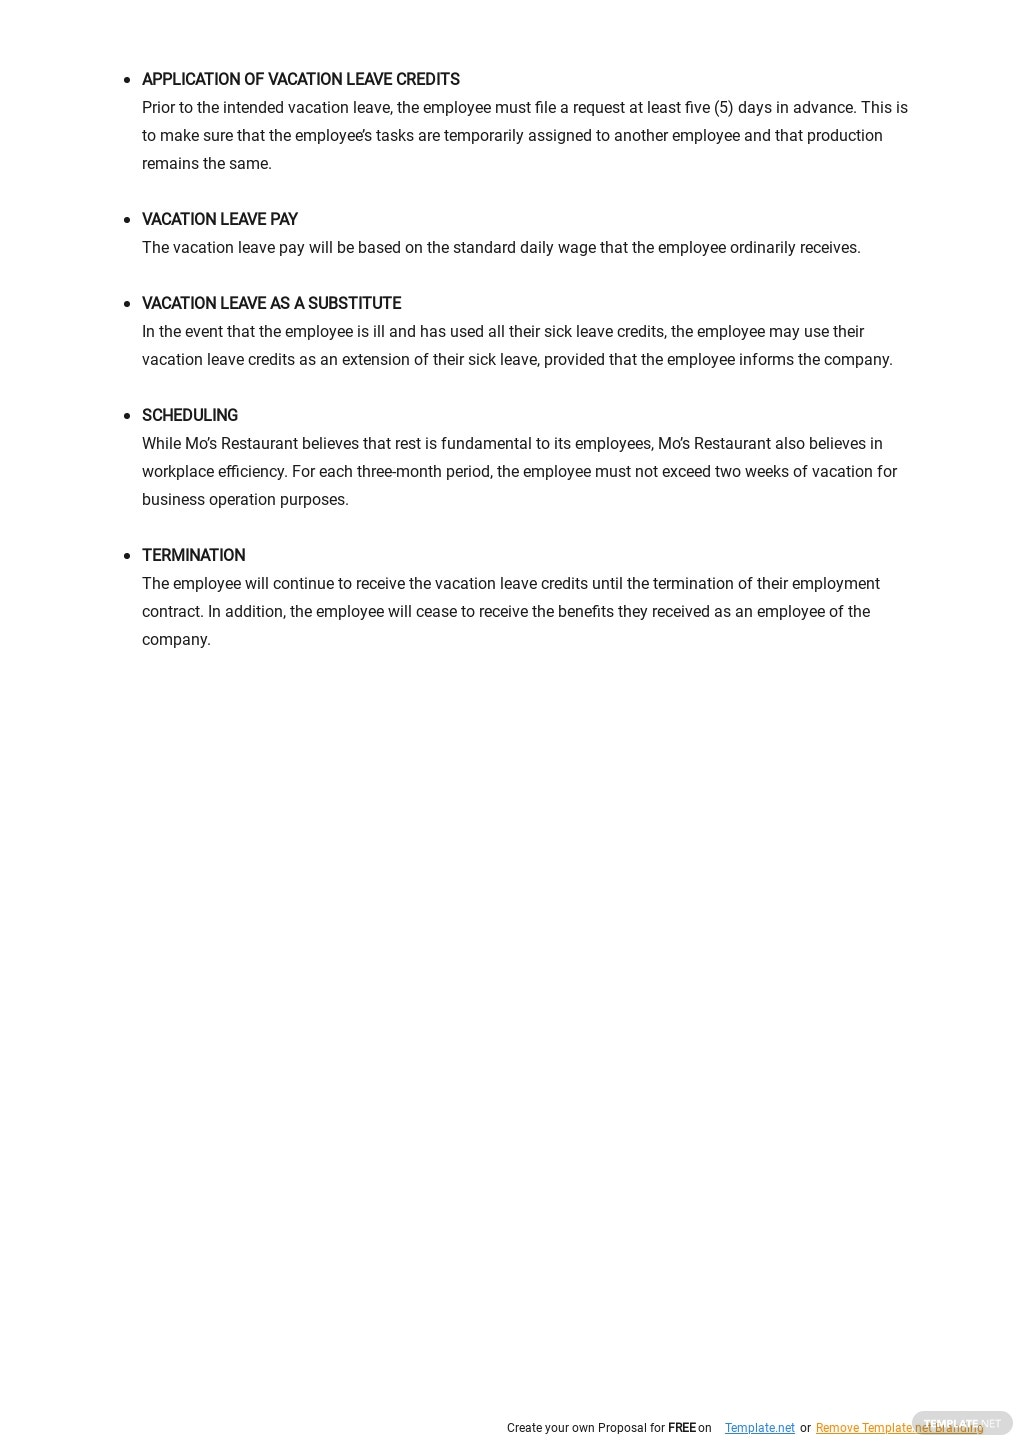 Vacation Policy Template 2.jpe